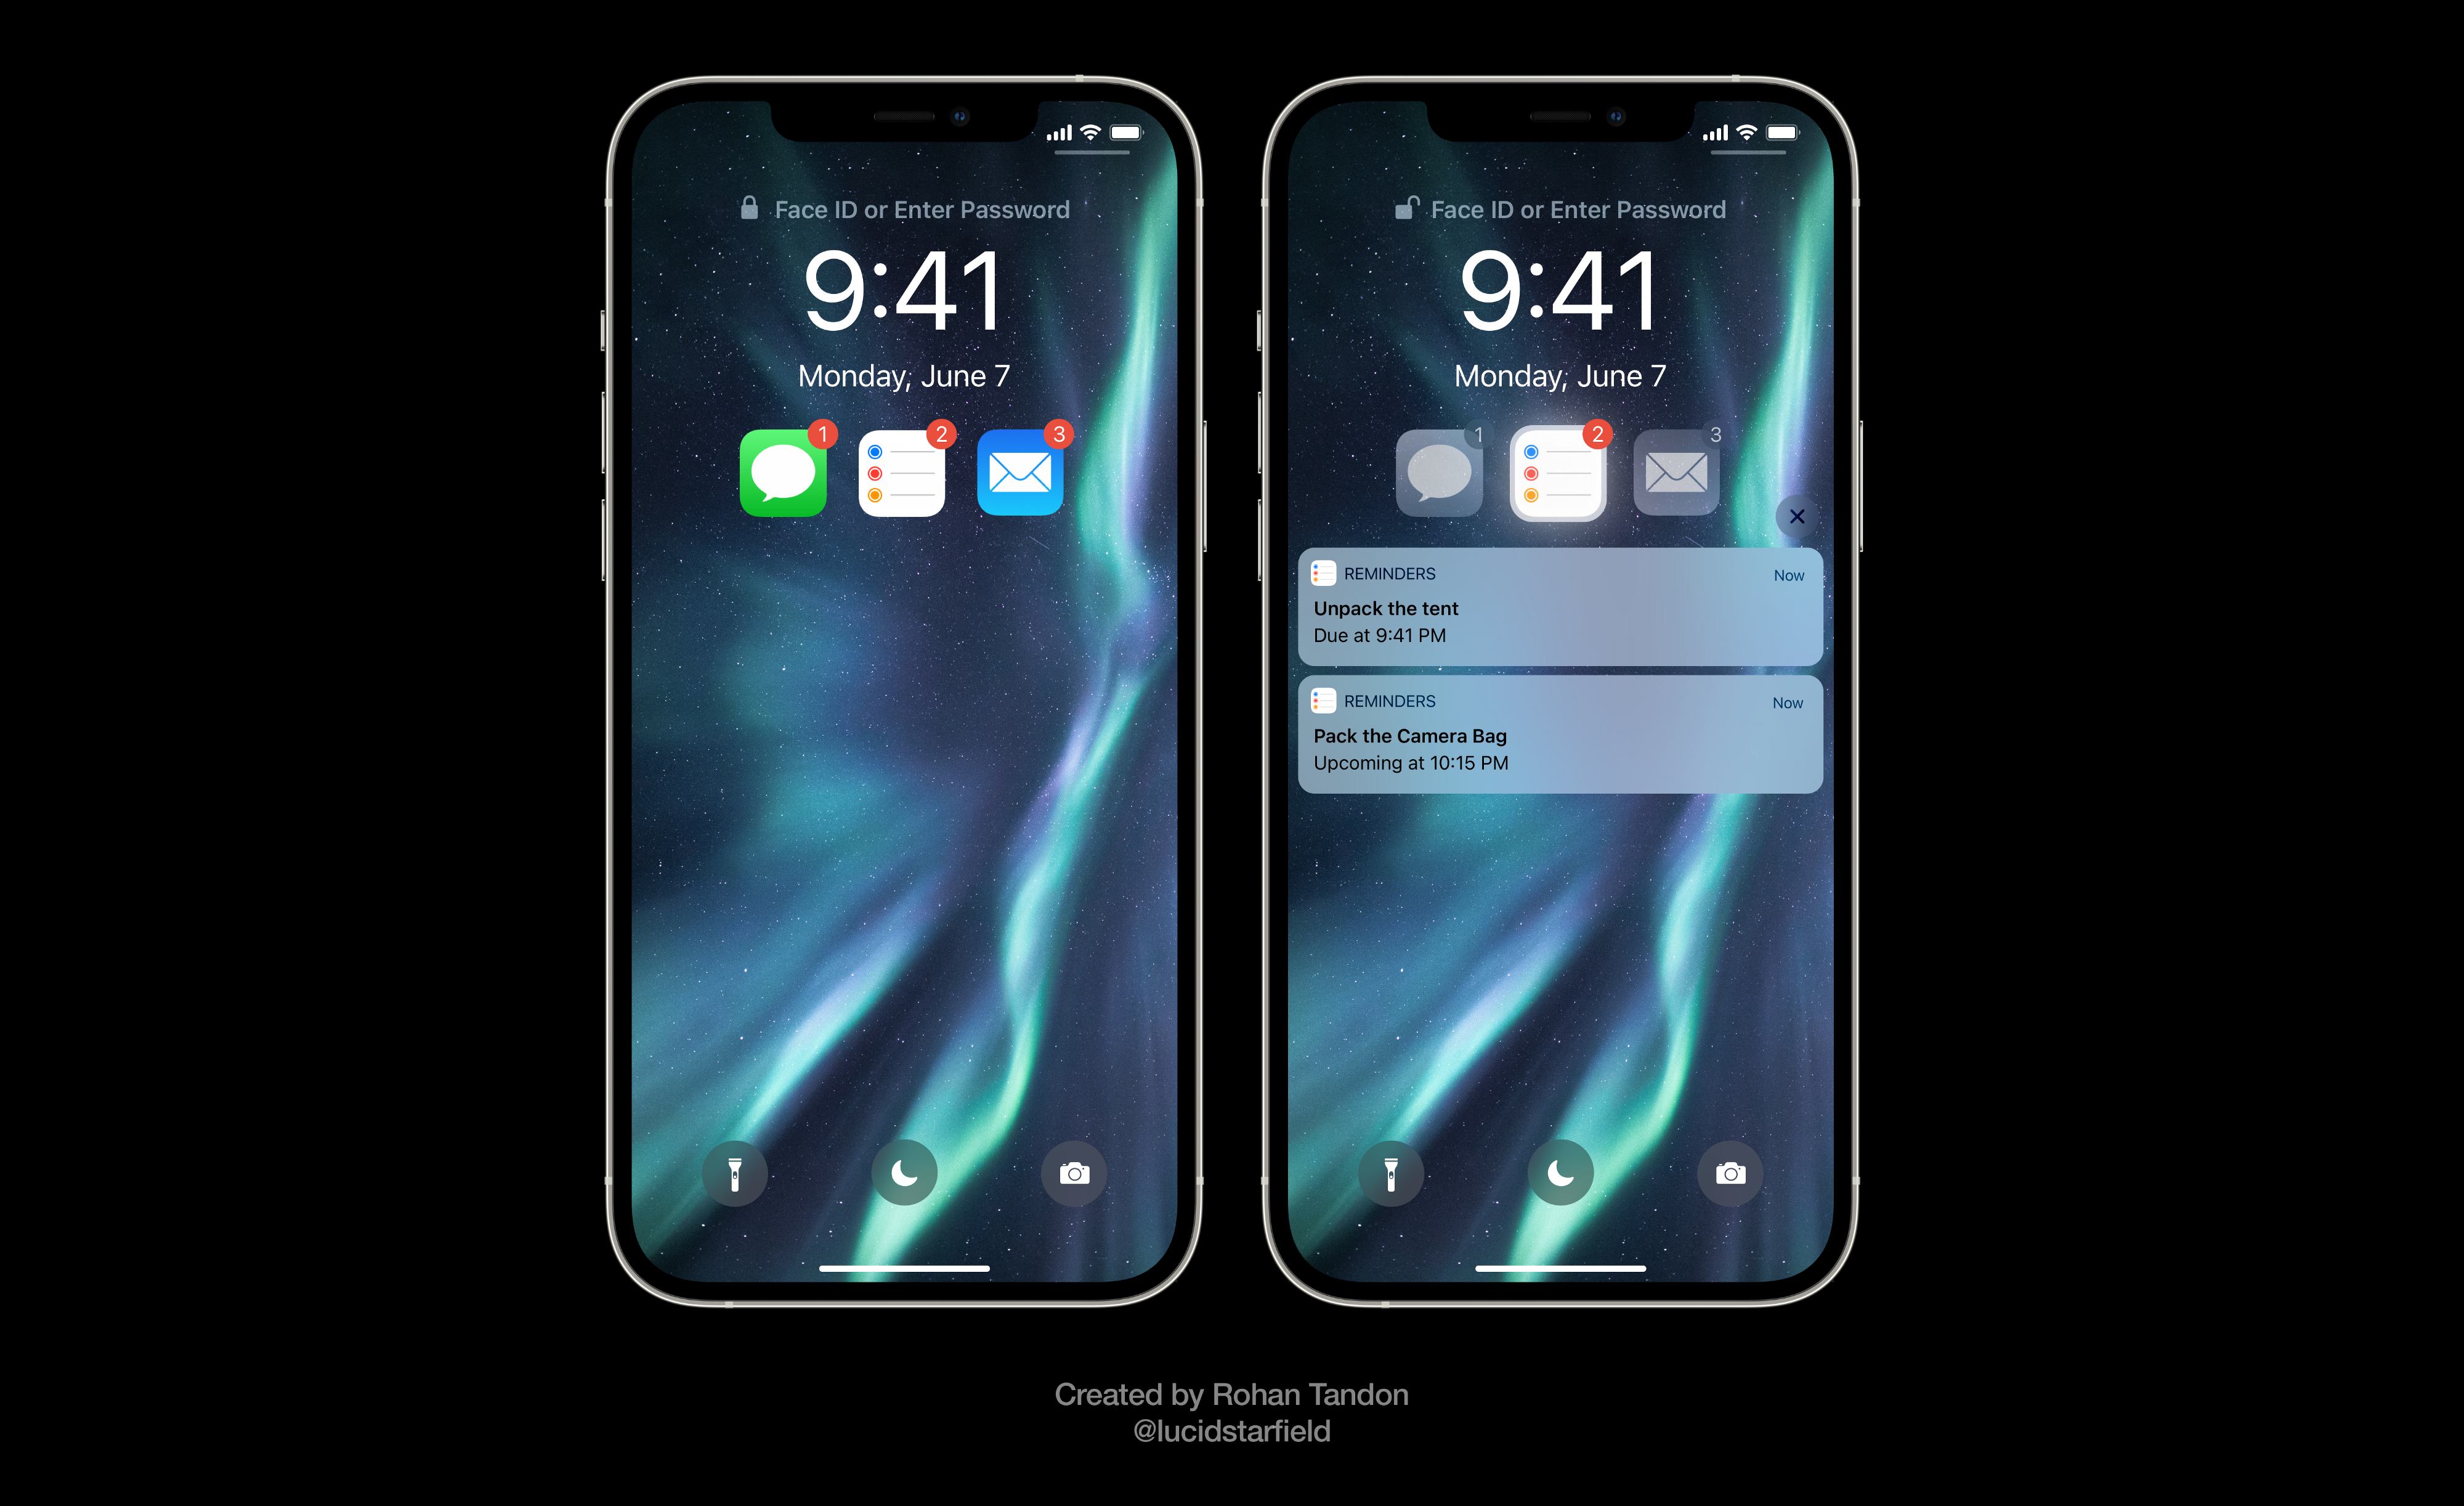 iOS 15 Aurora imagines organized notifications on the Lock Screen. It allows users to assess if they want to view notifications from a specific app, just by glancing at the app icon.